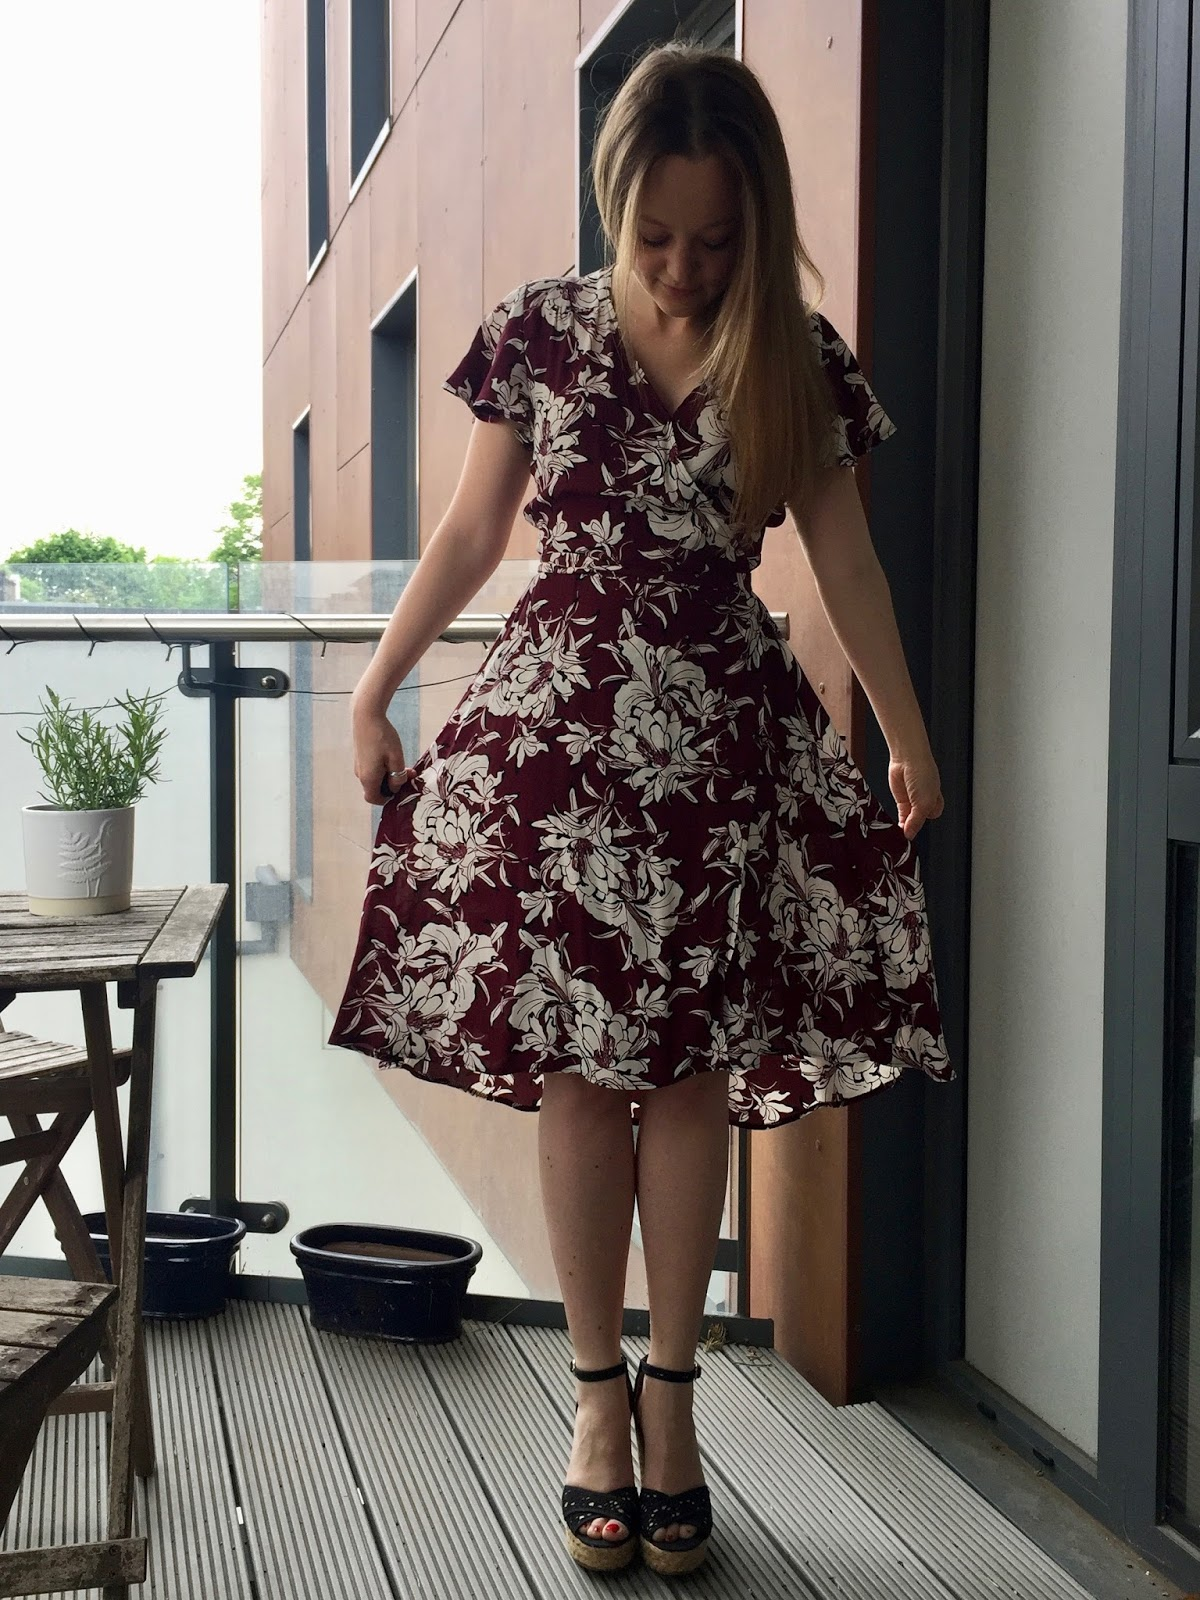 Skirts 2017 Fashion Brands Long Skirt Elastic Waistline Summer Star Pattern Sequined Star Models Net Yarn Style Super Cents Big Swing Bright And Translucent In Appearance Bottoms